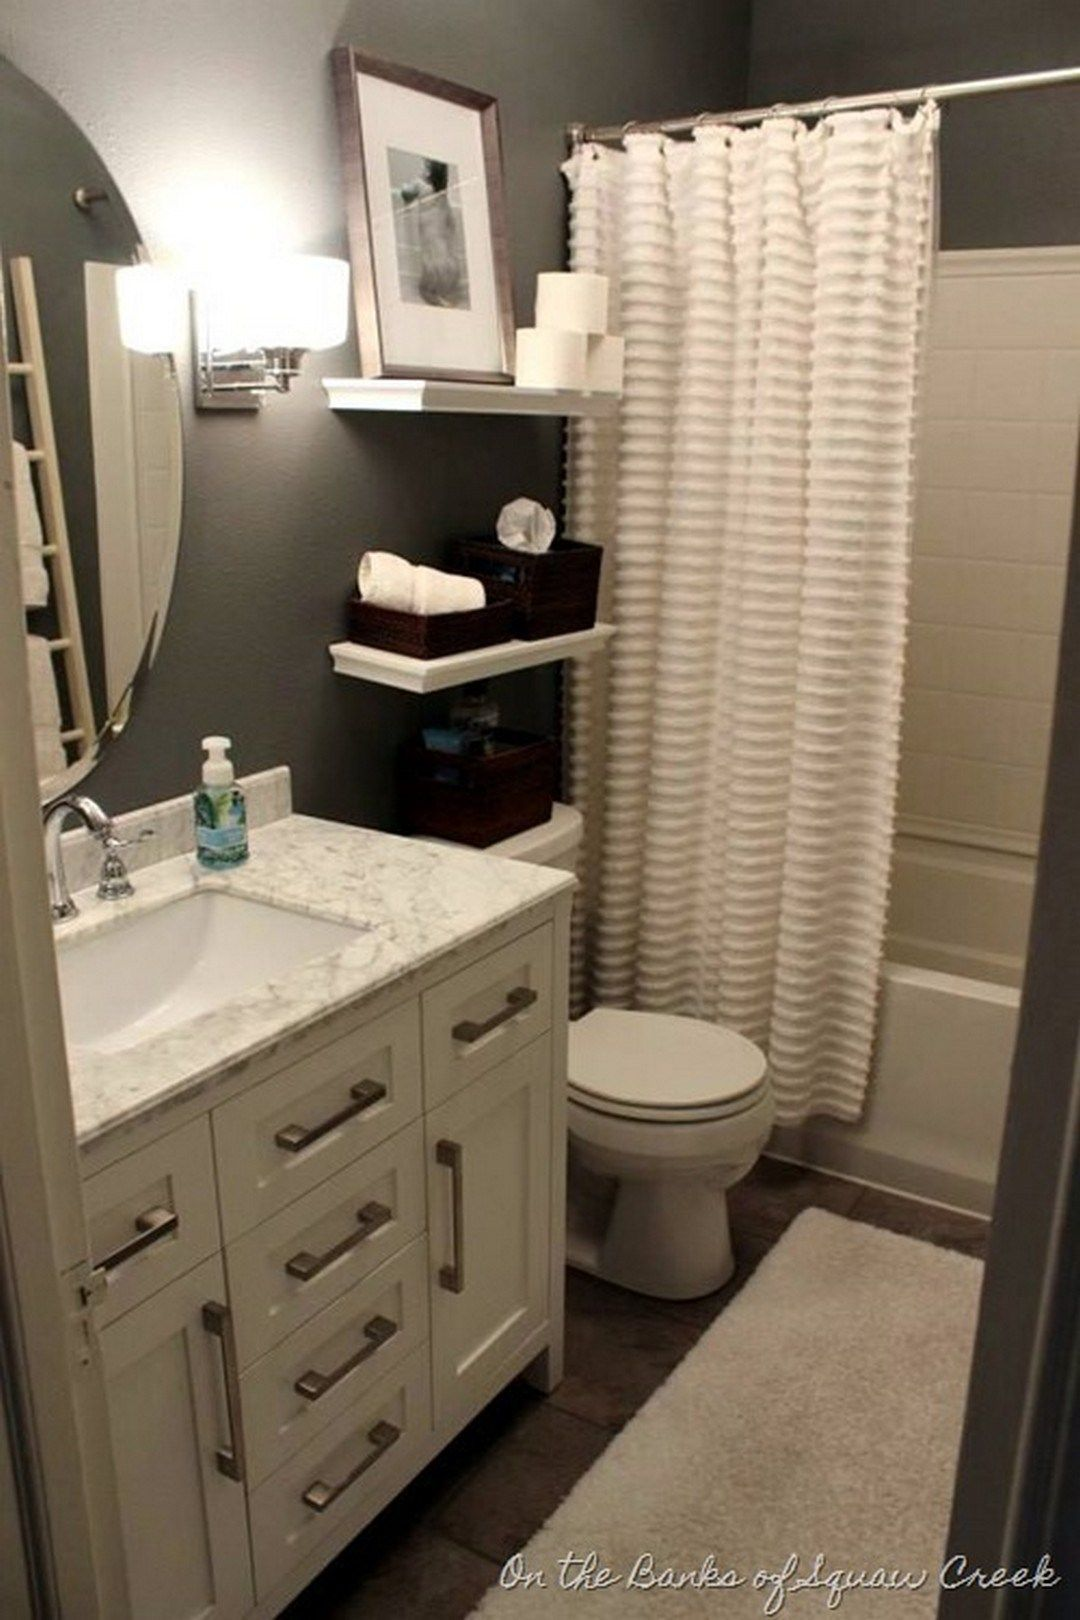 Elegant Small Bathroom Decorating Ideas 7 Decomagz Small Bathroom Decor Small Bathroom Remodel Bathroom Design Small